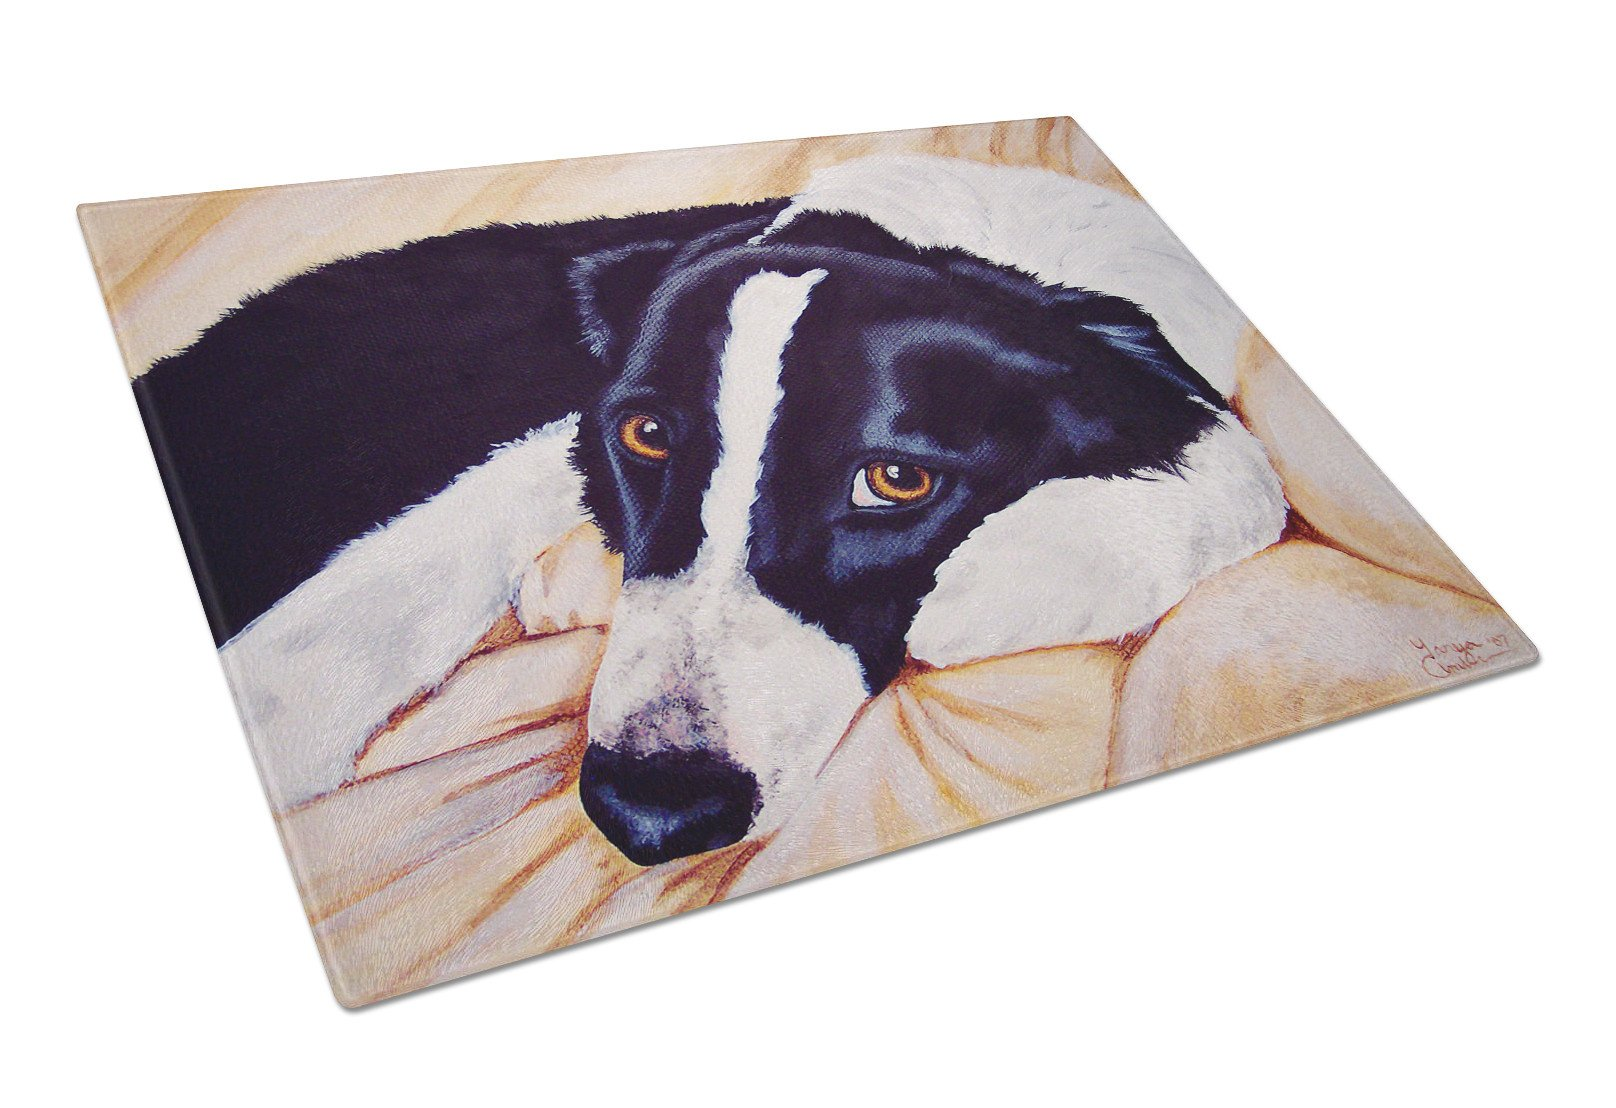 Naptime Border Collie Glass Cutting Board Large AMB1080LCB by Caroline's Treasures